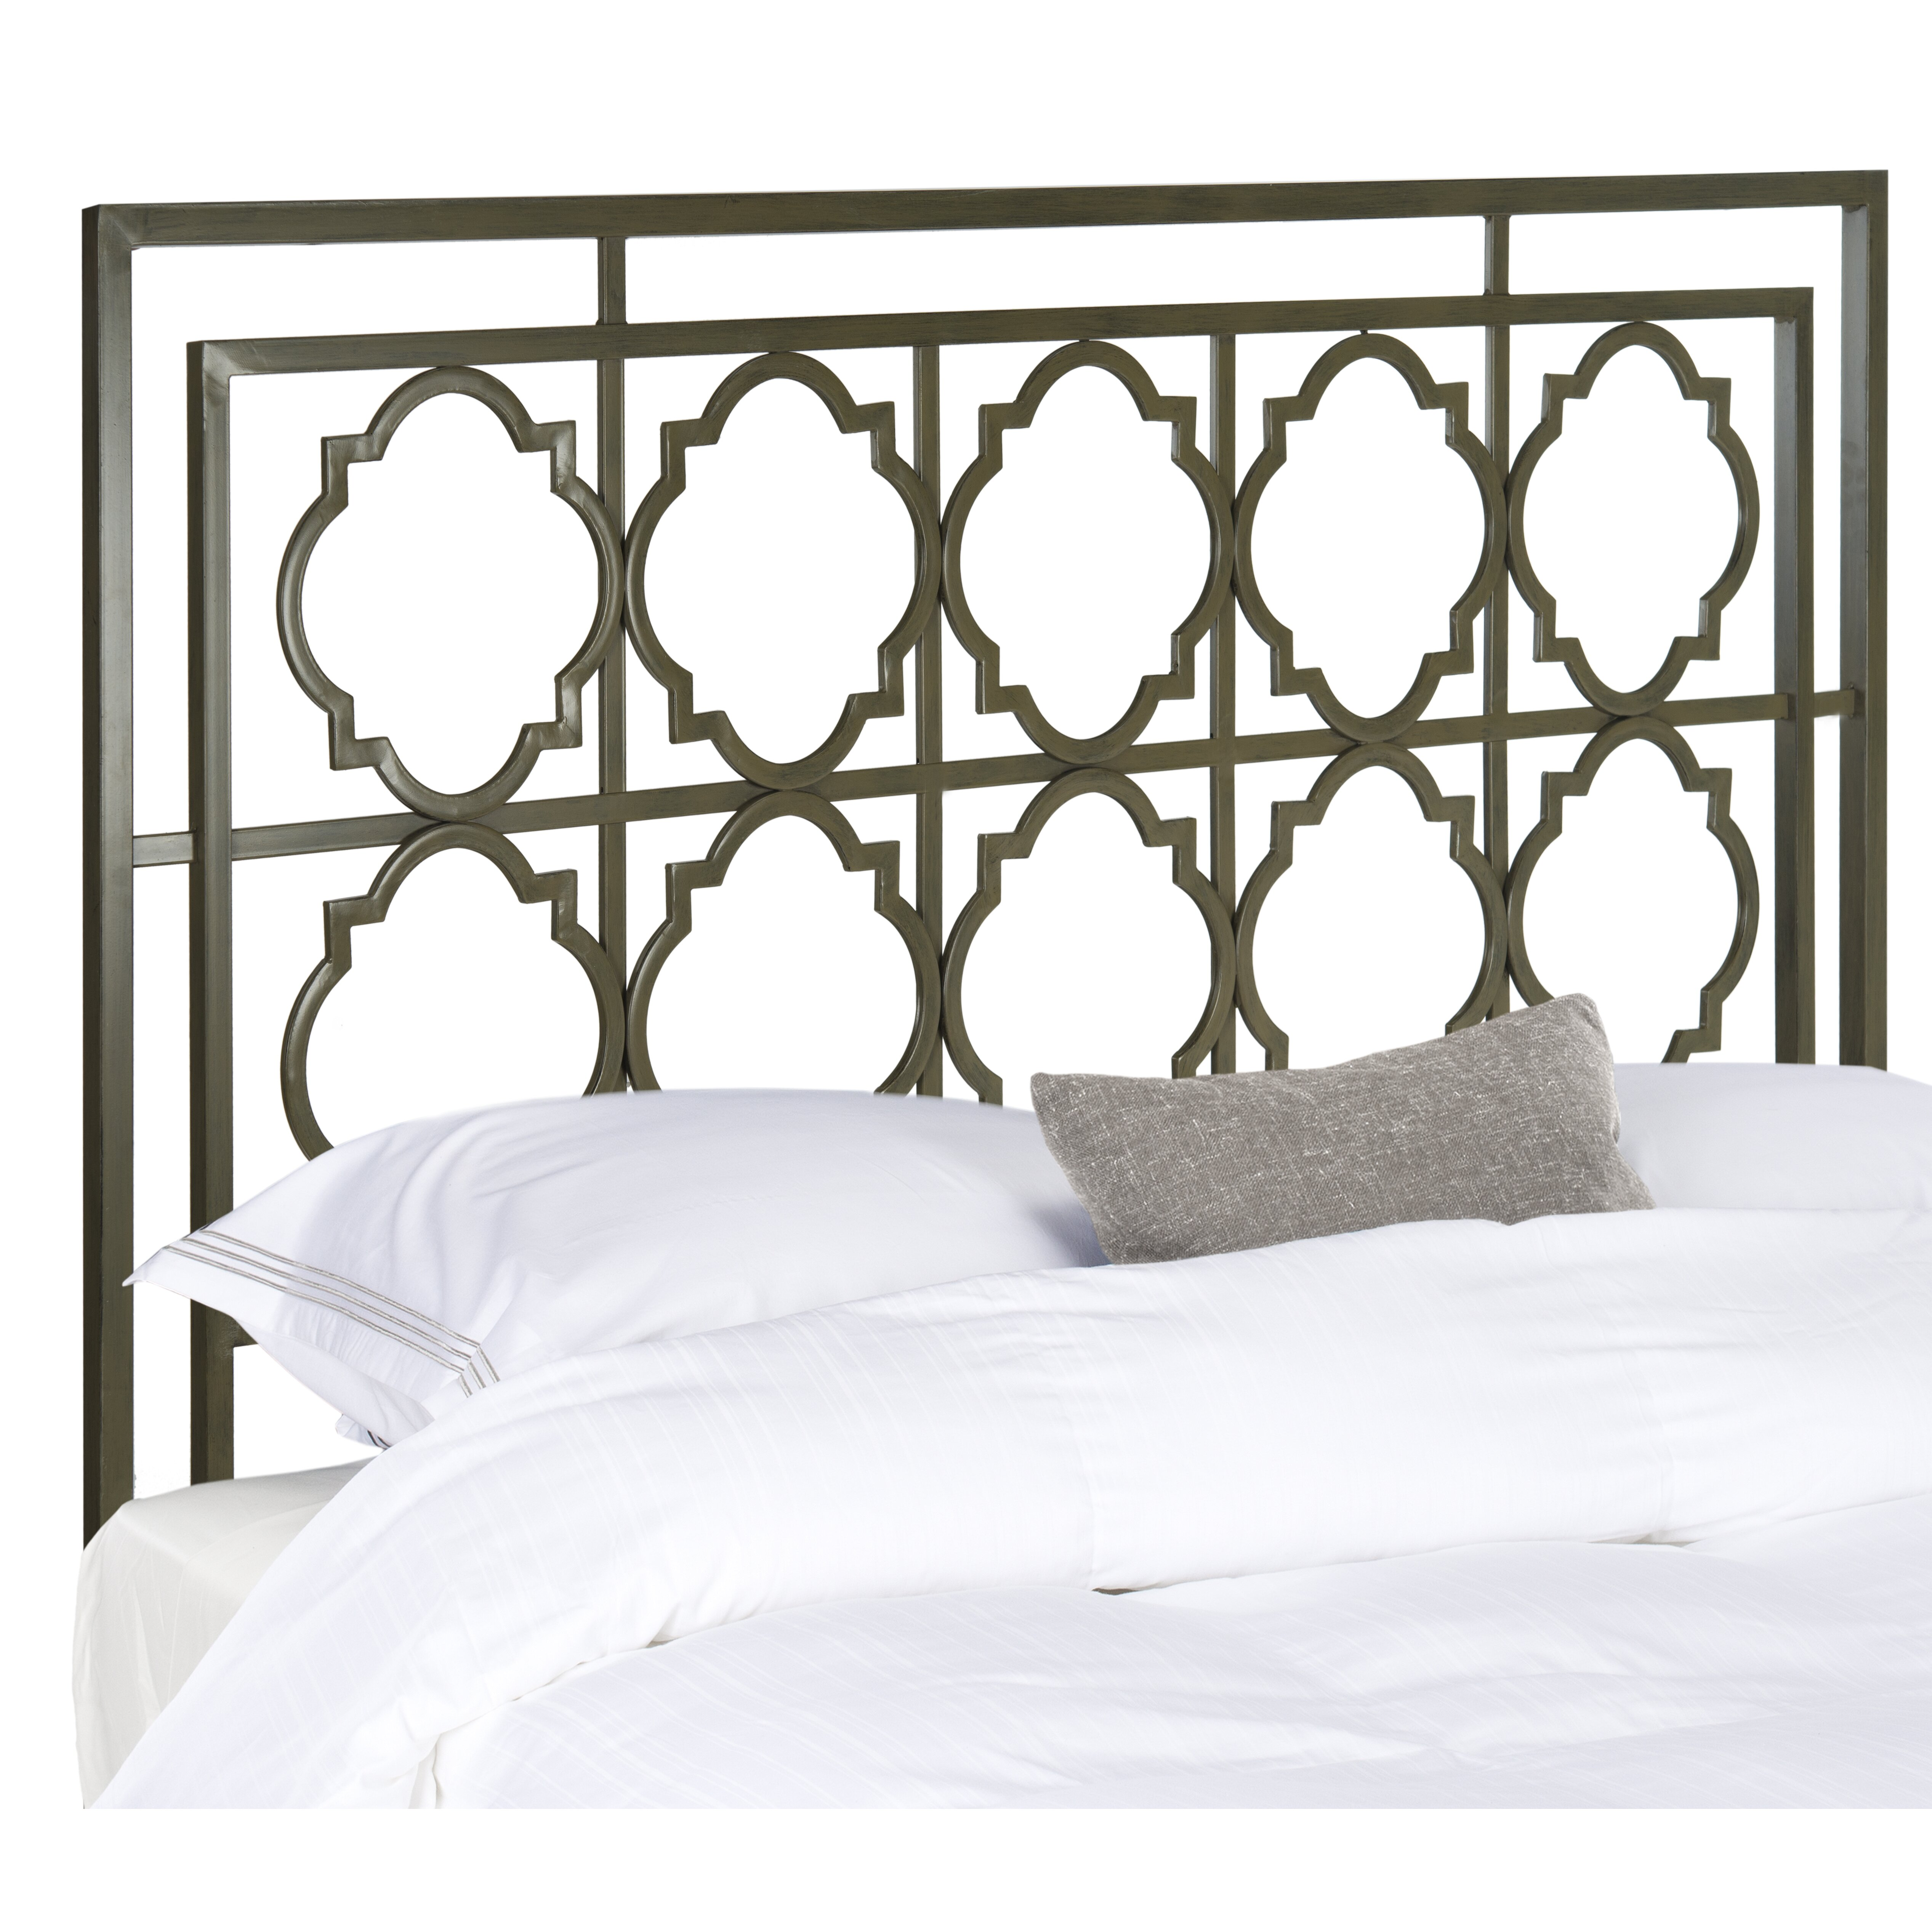 Metal headboard bed frame - Mercury Row Reg Cepheus Metal Headboard